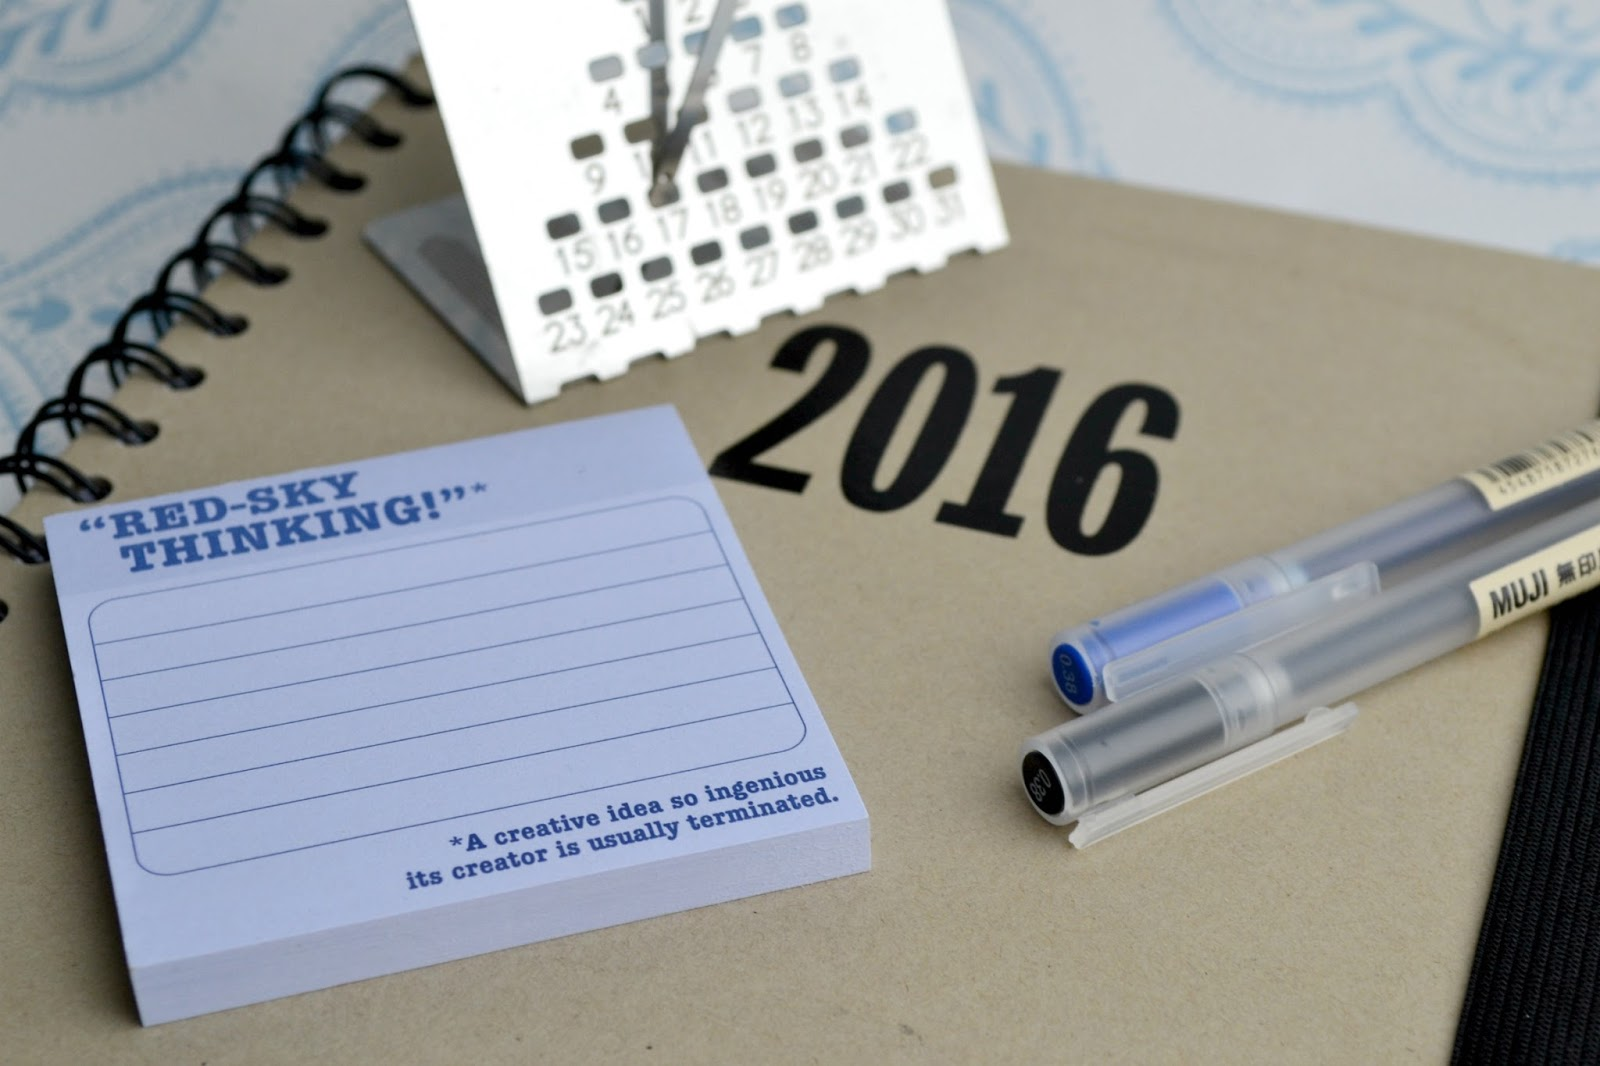 Stationary and a calendar for 2016